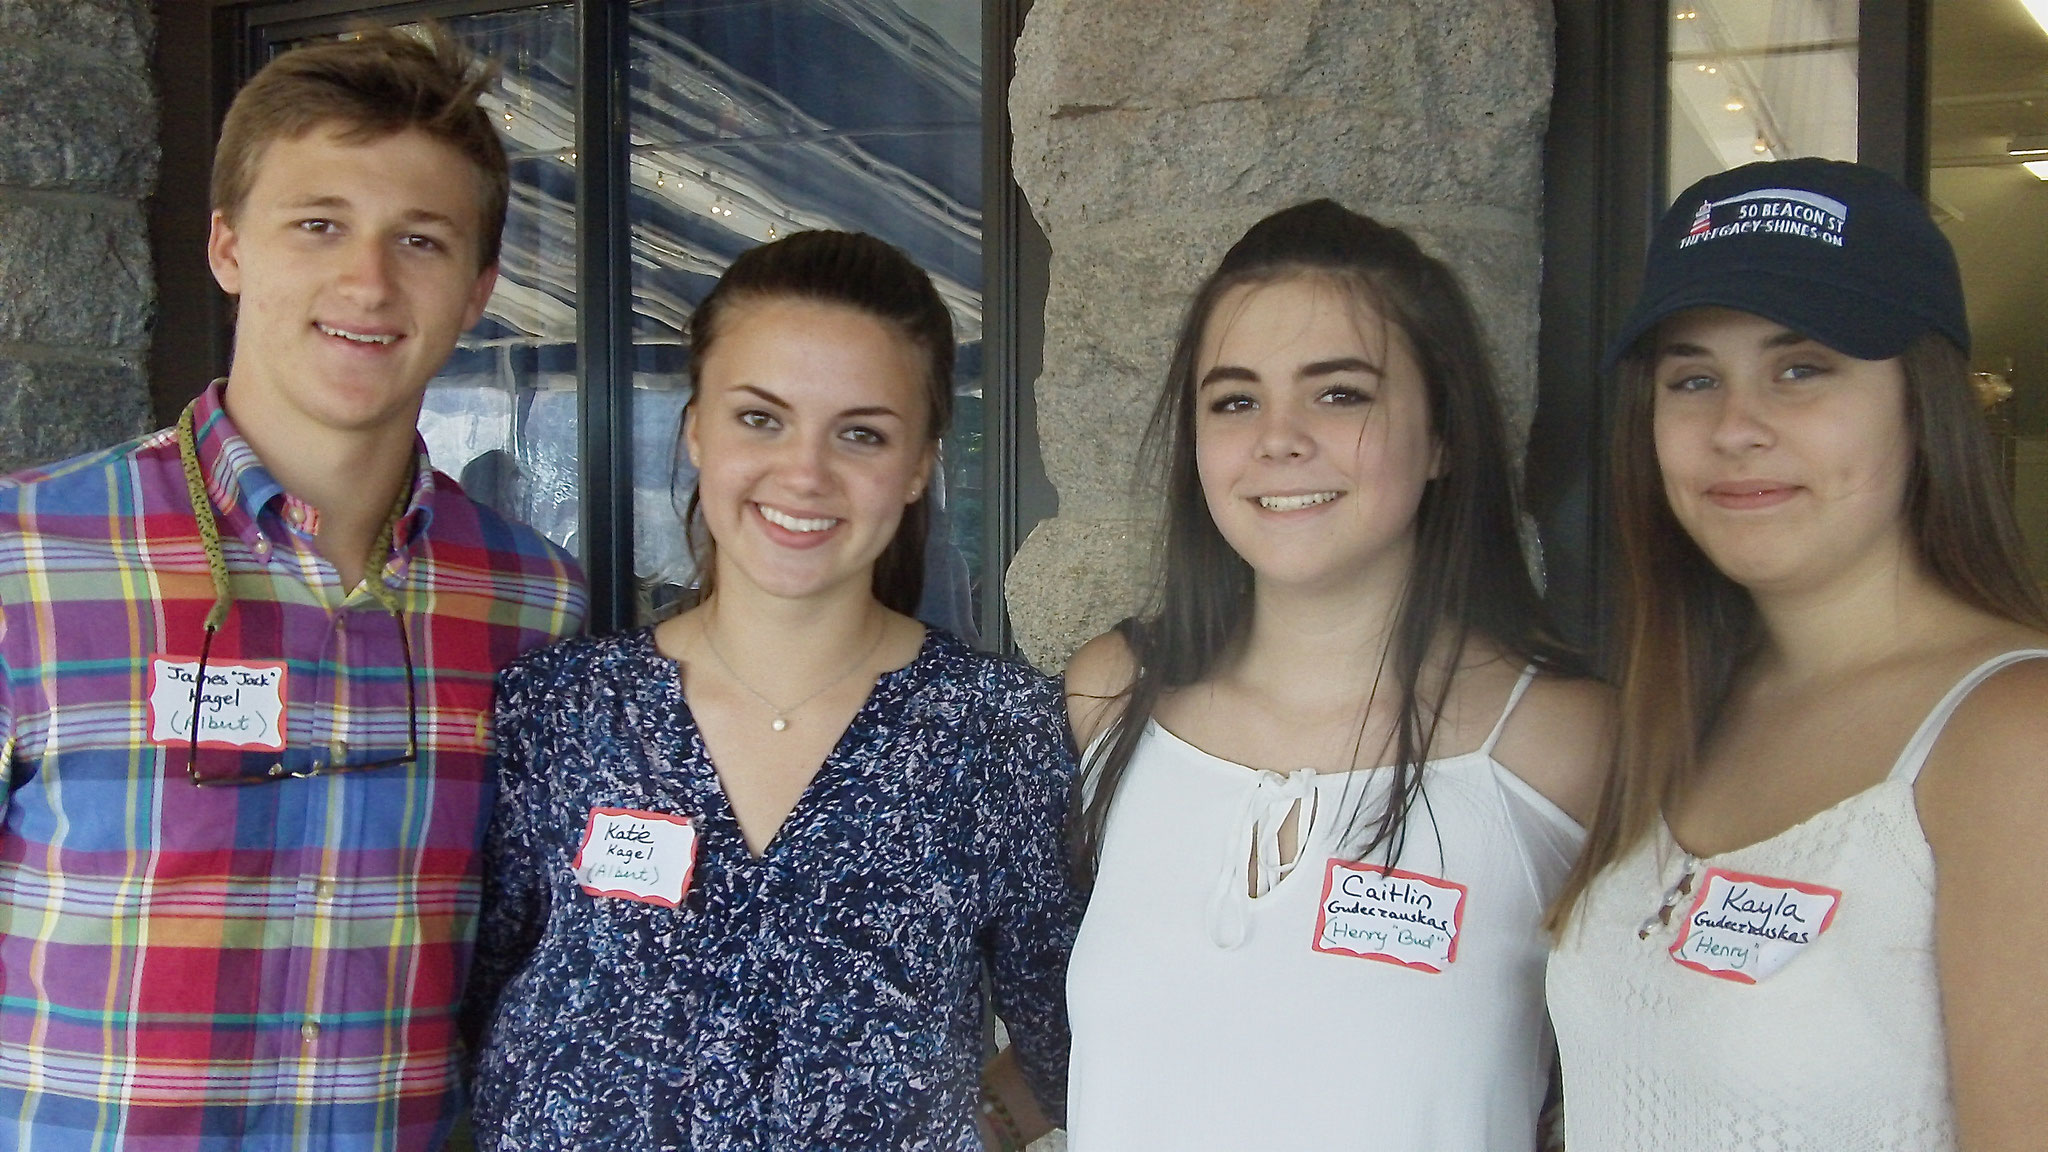 Jack & Kate (twins of Celeste, 15 yrs old) & Caitlin & Kayla (twins of Jim & Lynn, 15 yrs old)